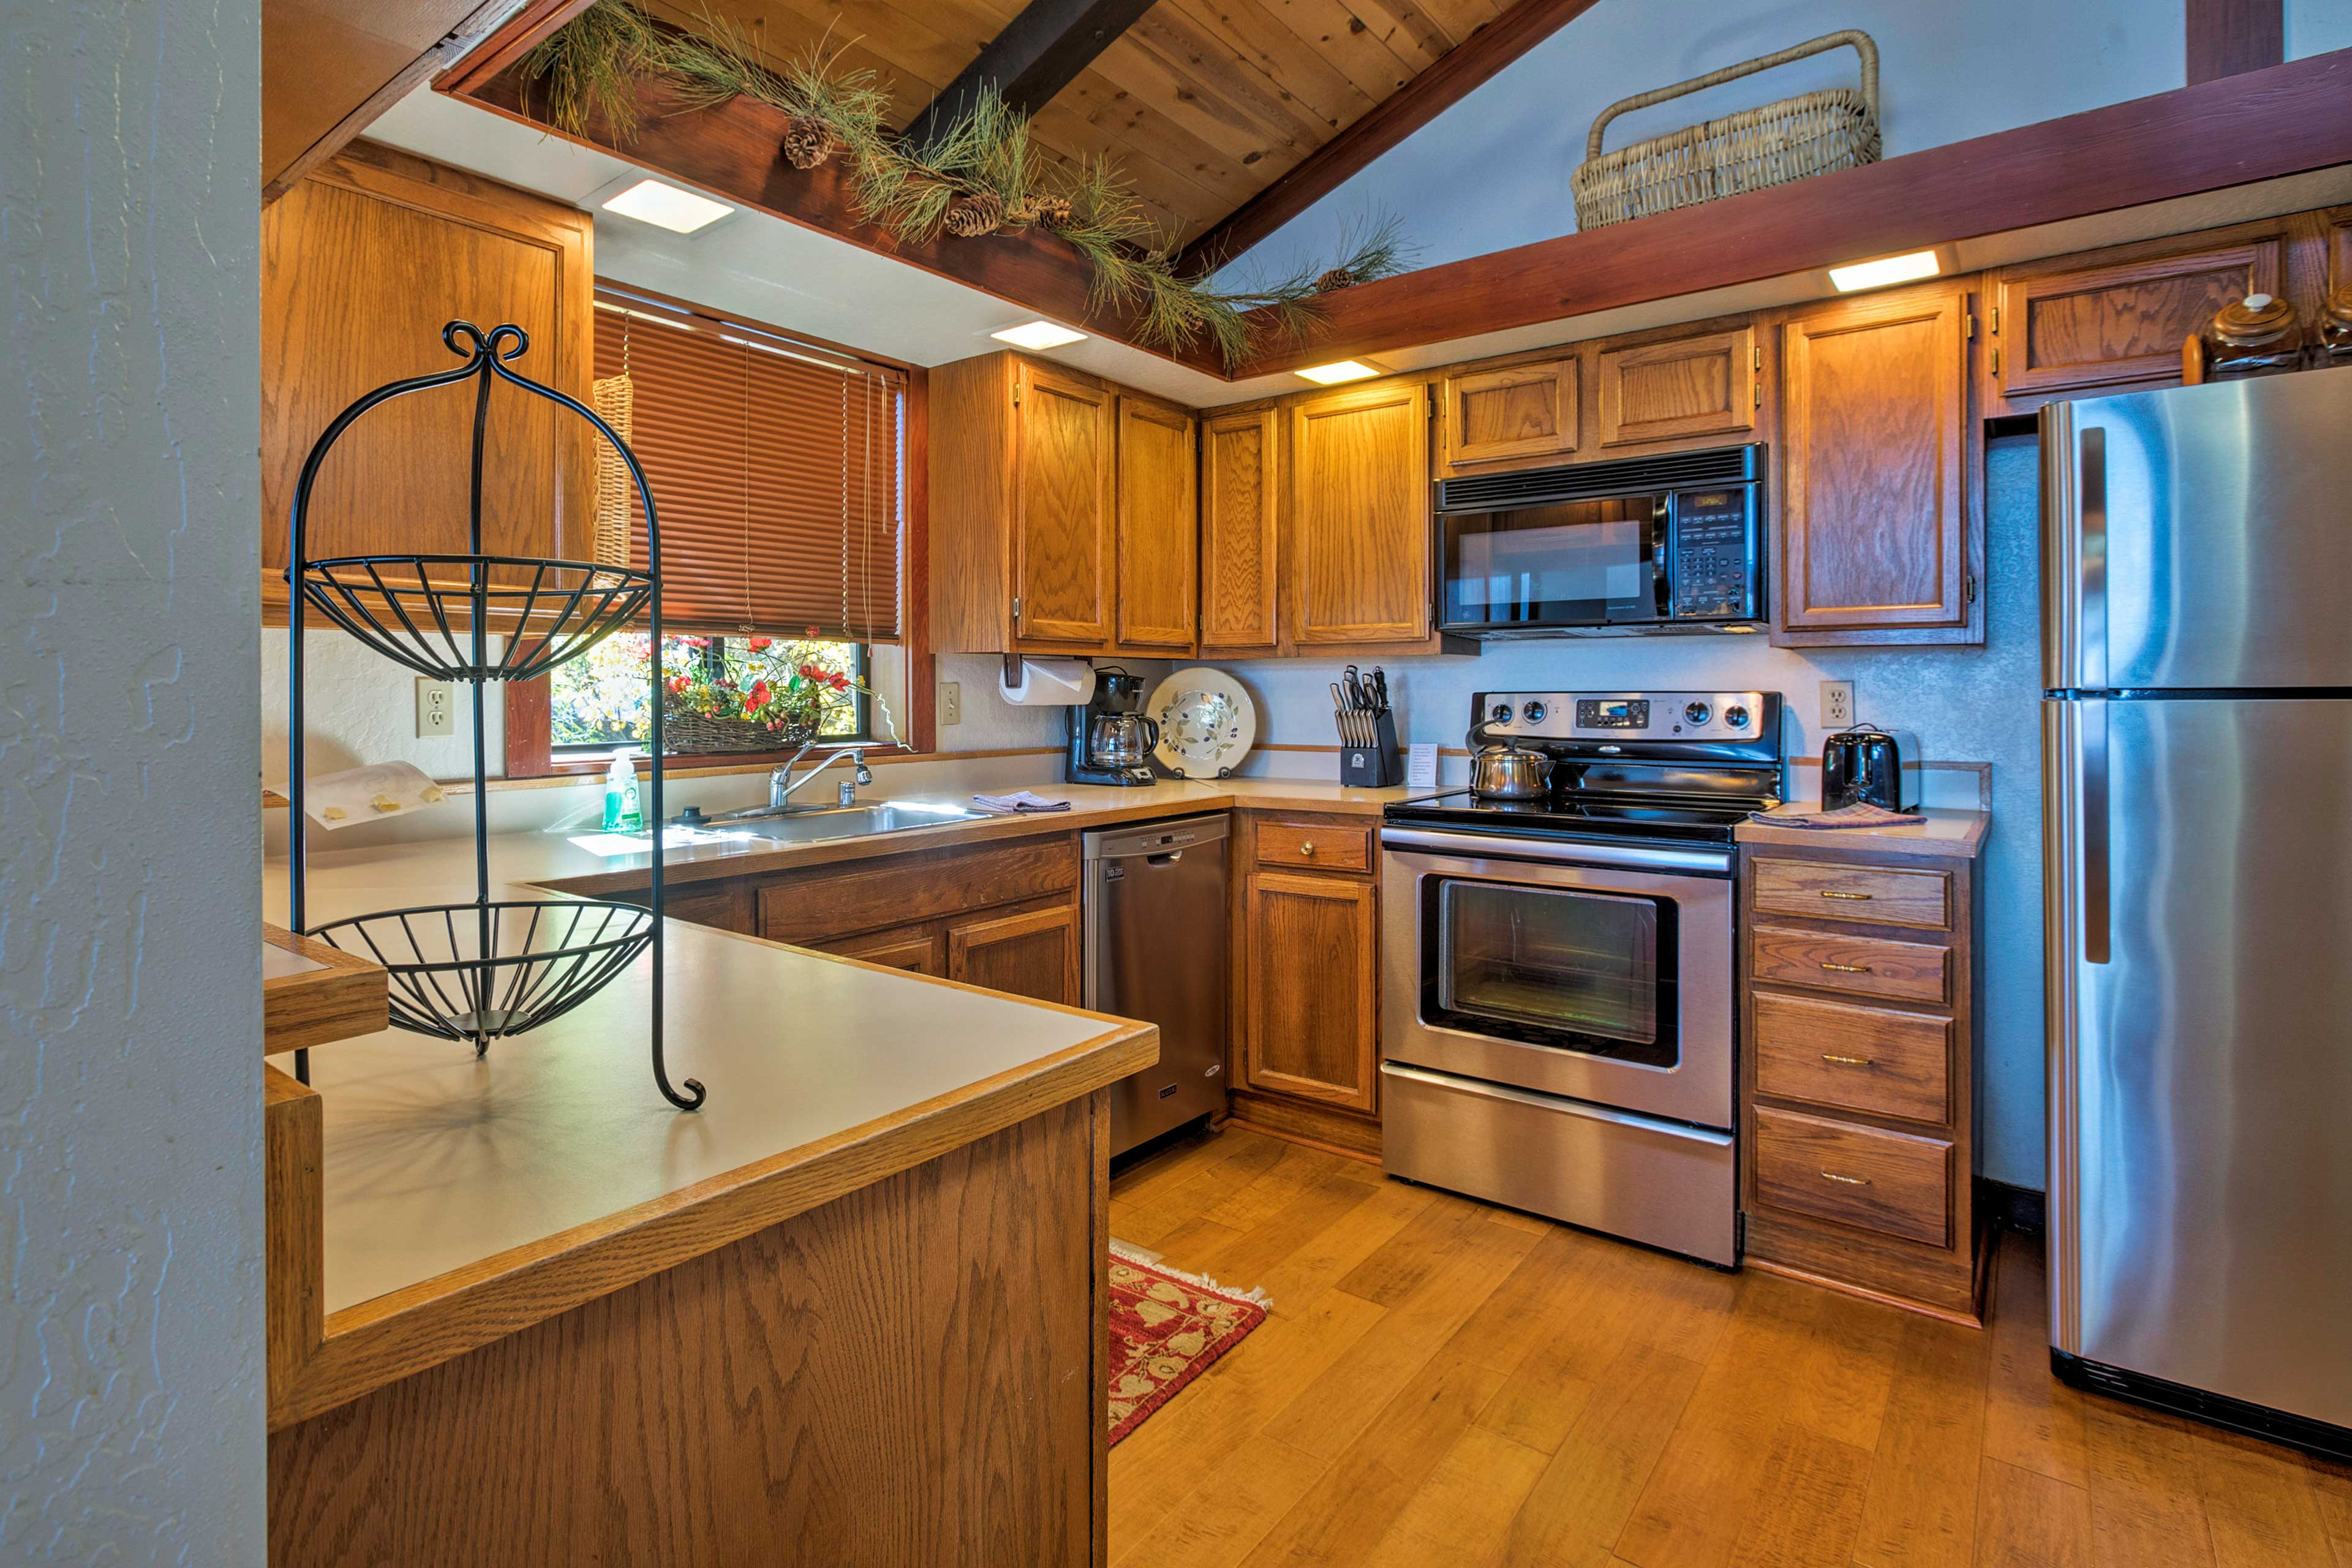 This kitchen comes fully equipped and includes stainless steel appliances!